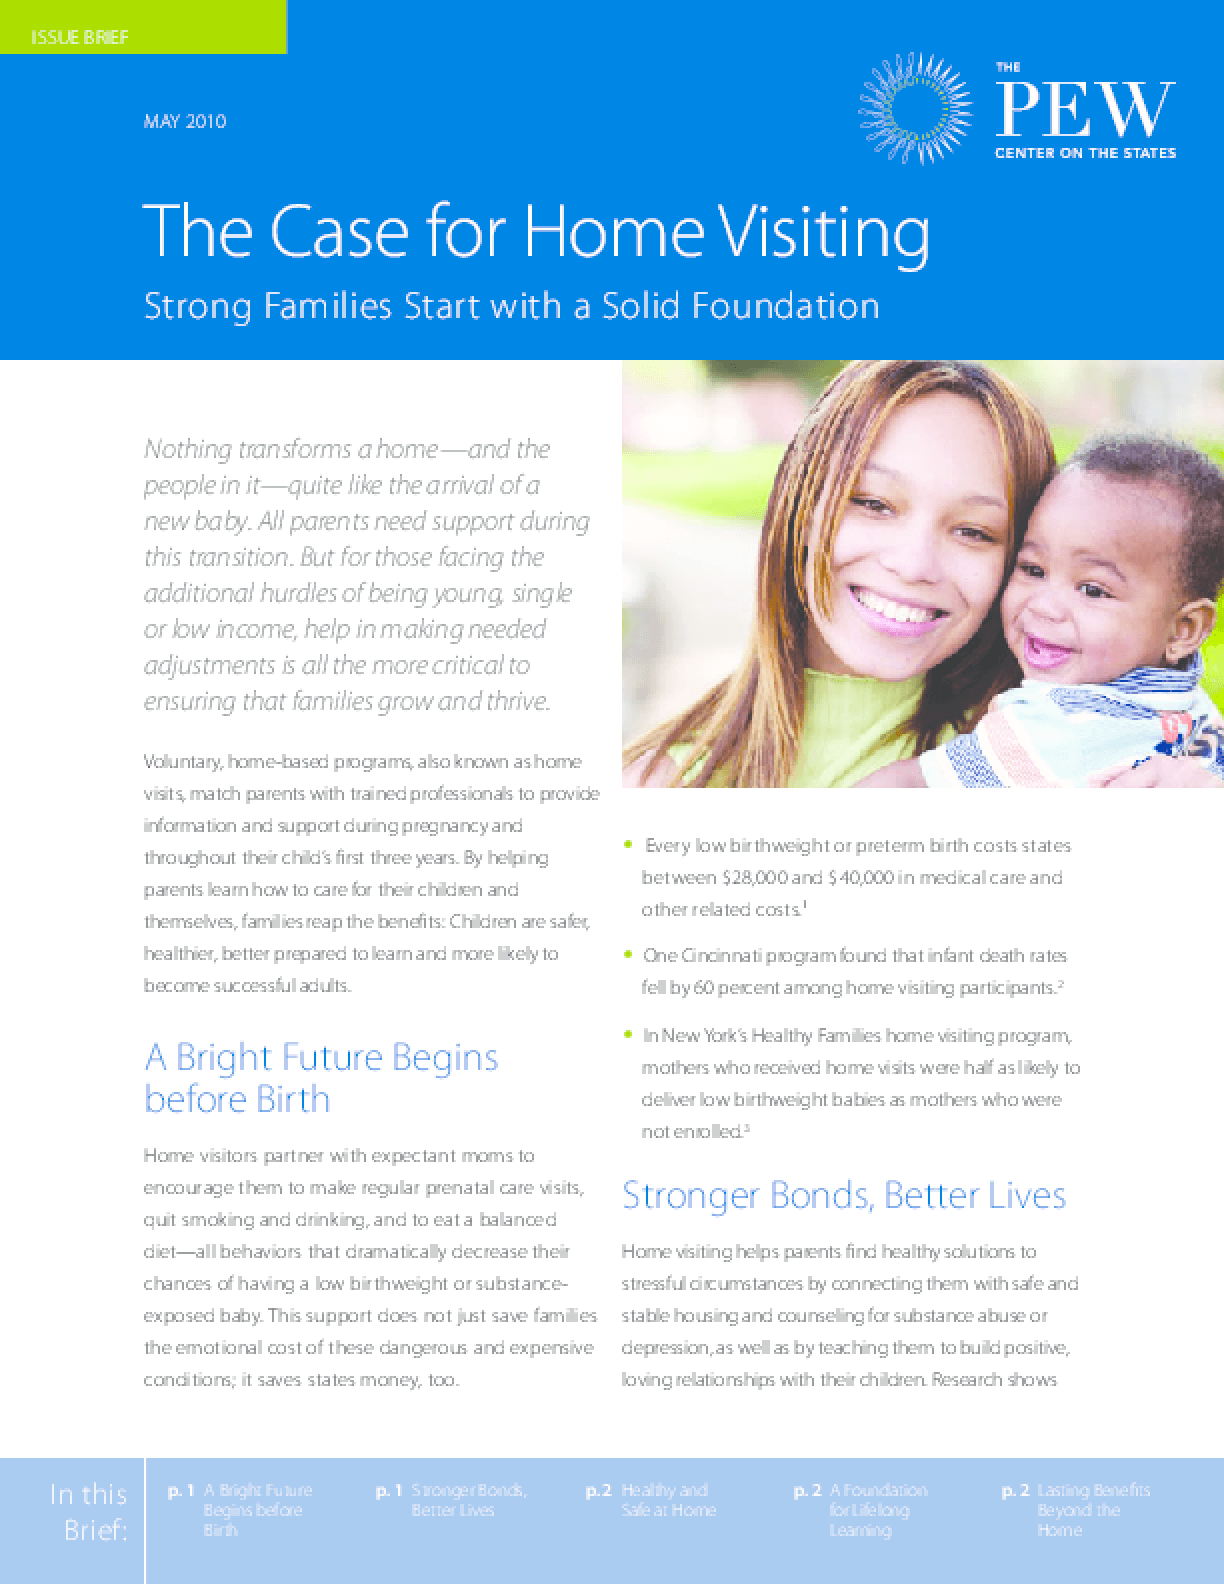 The Case for Home Visiting: Strong Families Start With a Solid Foundation